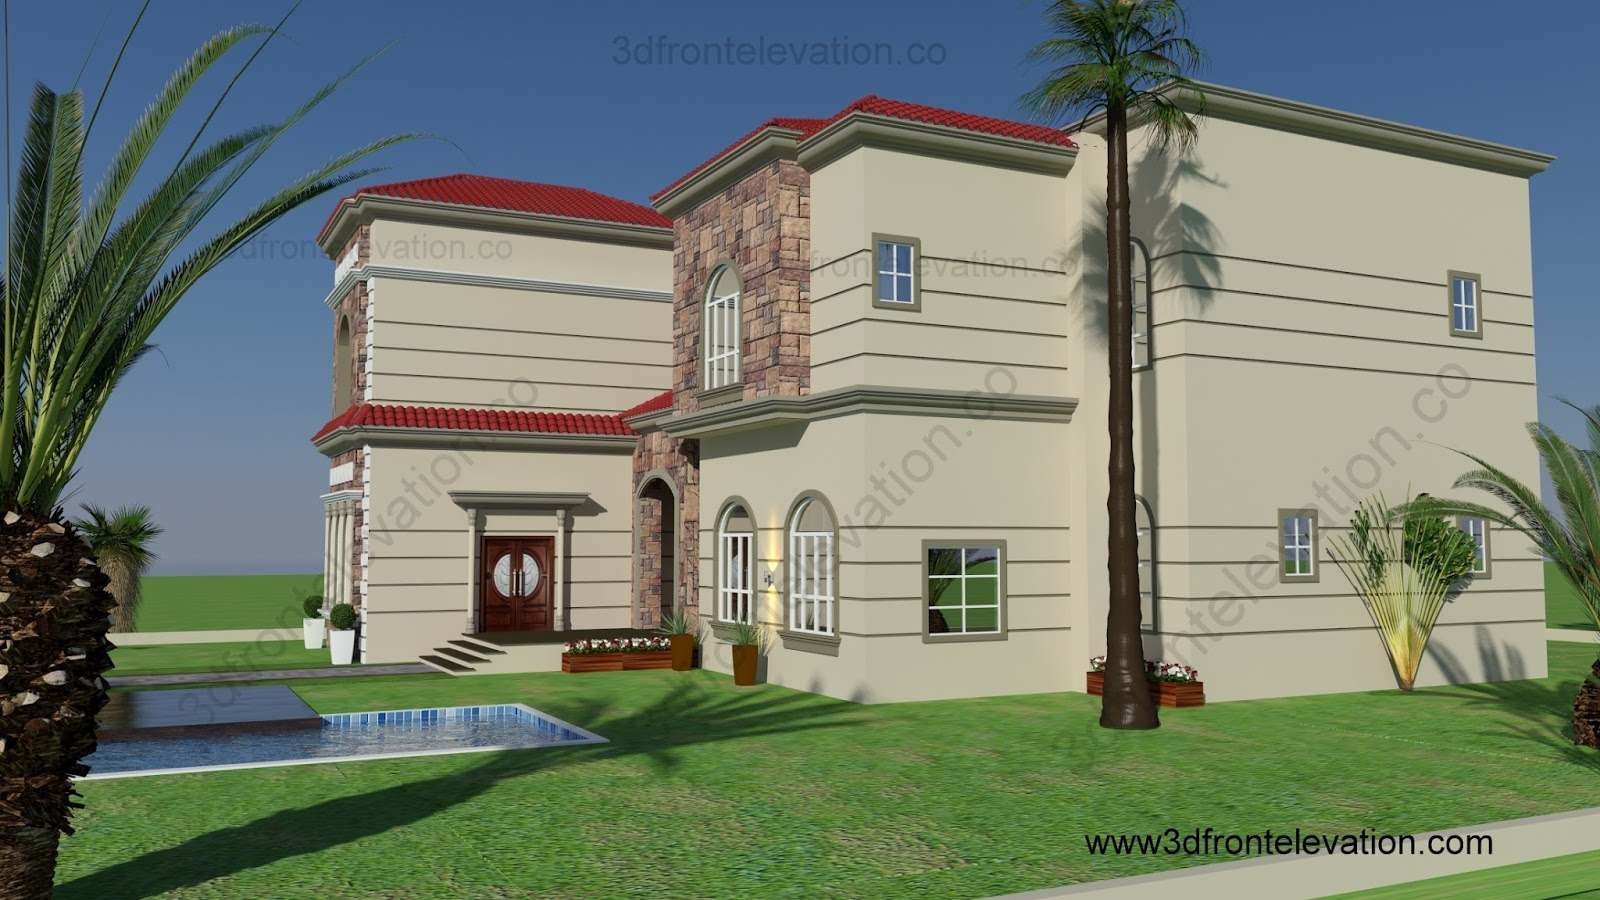 3d Front Elevation Of Houses In Dubai : D front elevation dubai